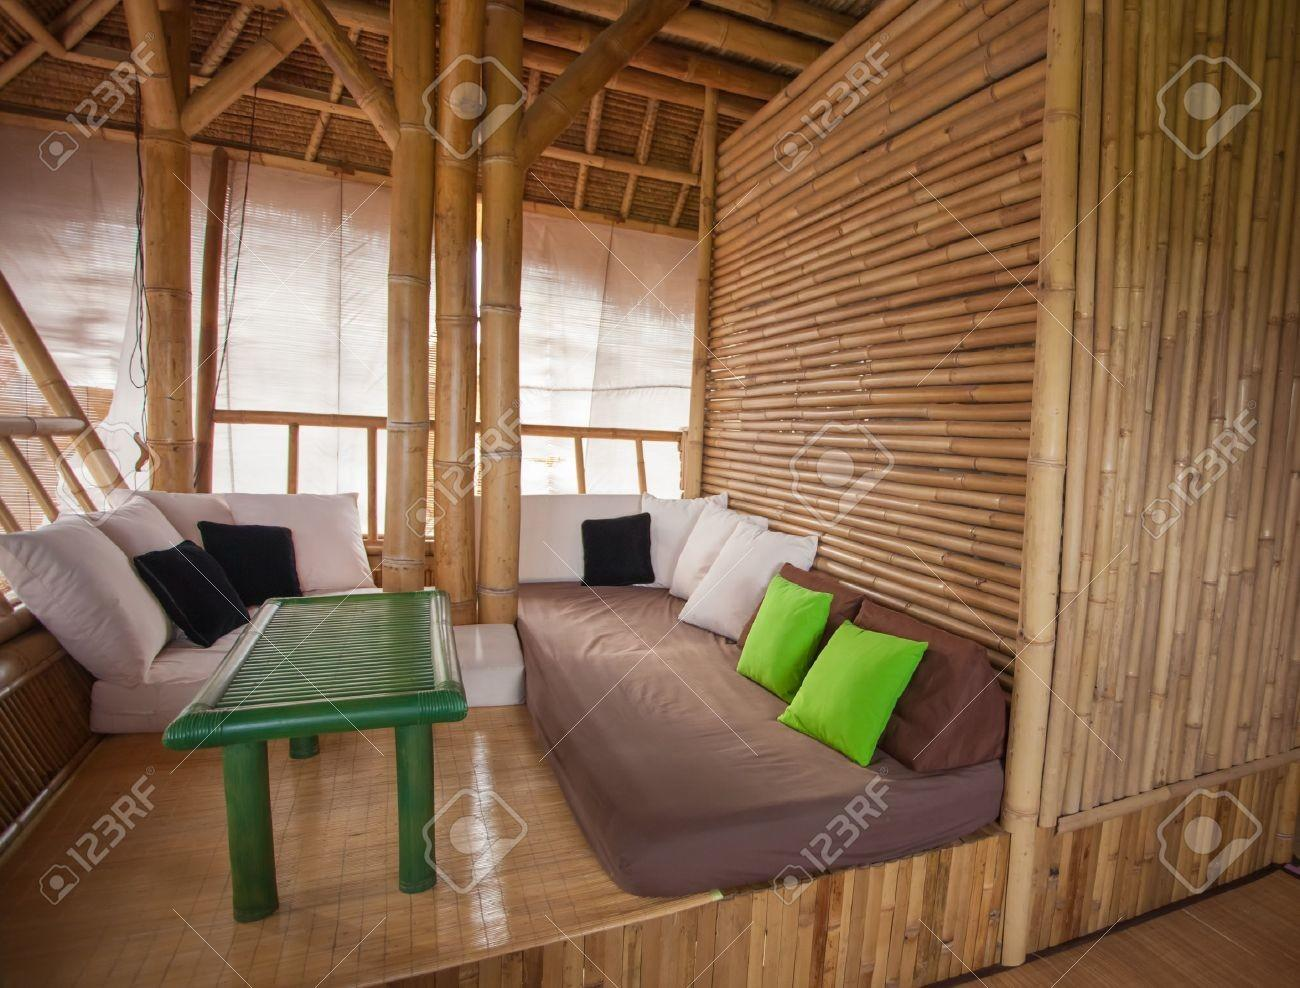 Best Bamboo House Decorating Design